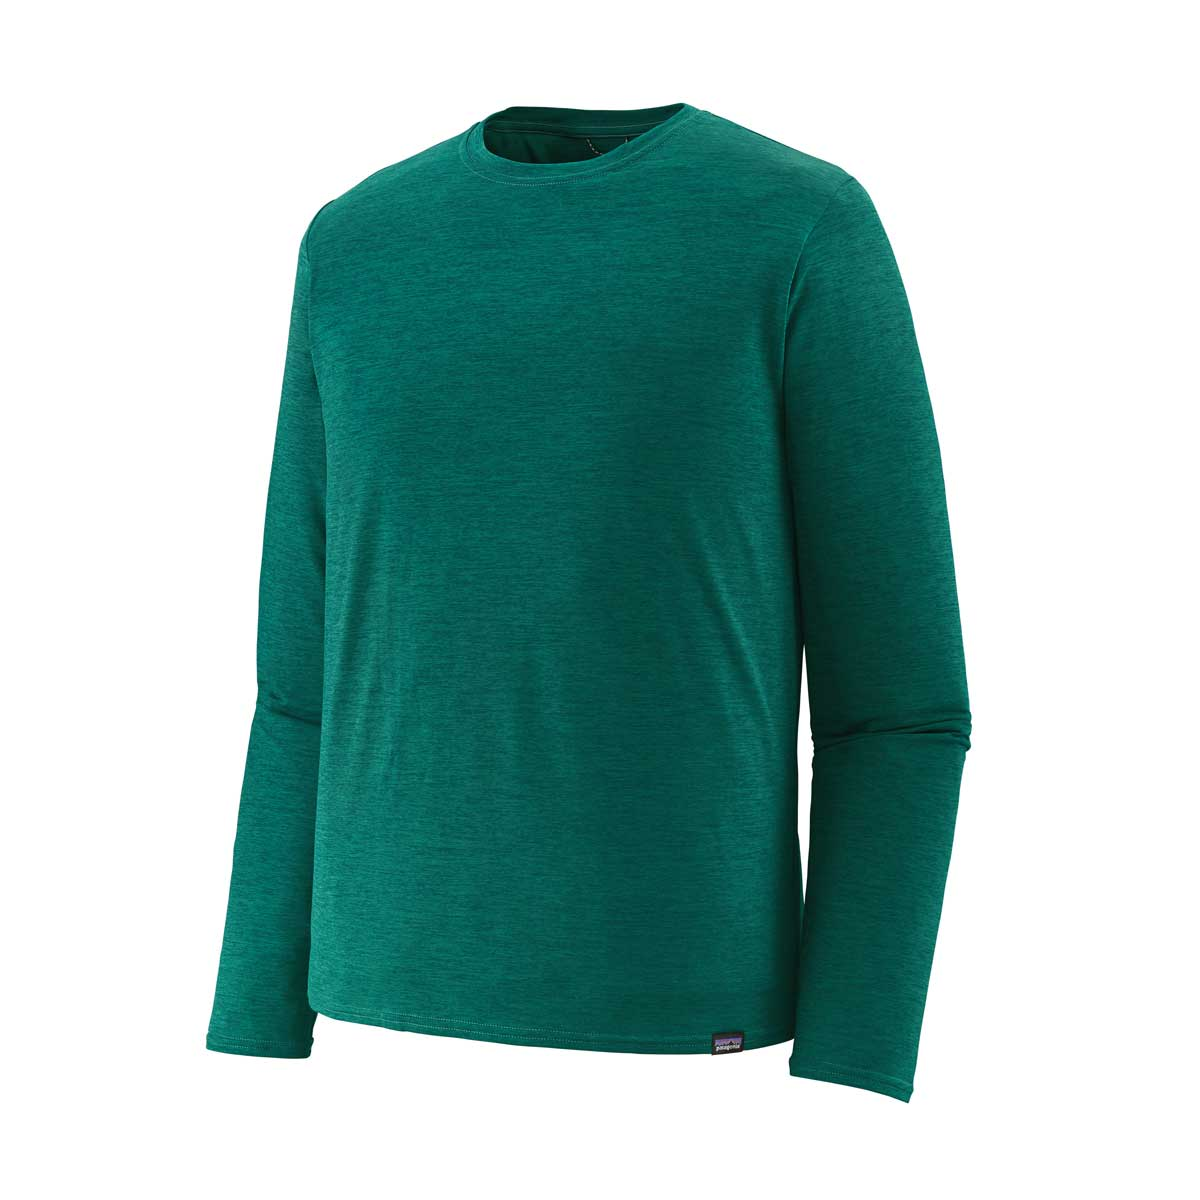 Patagonia men's Capilene Cool Daily Long Sleeve shirt in Borealis Green and Light Borealis Green X-Dye